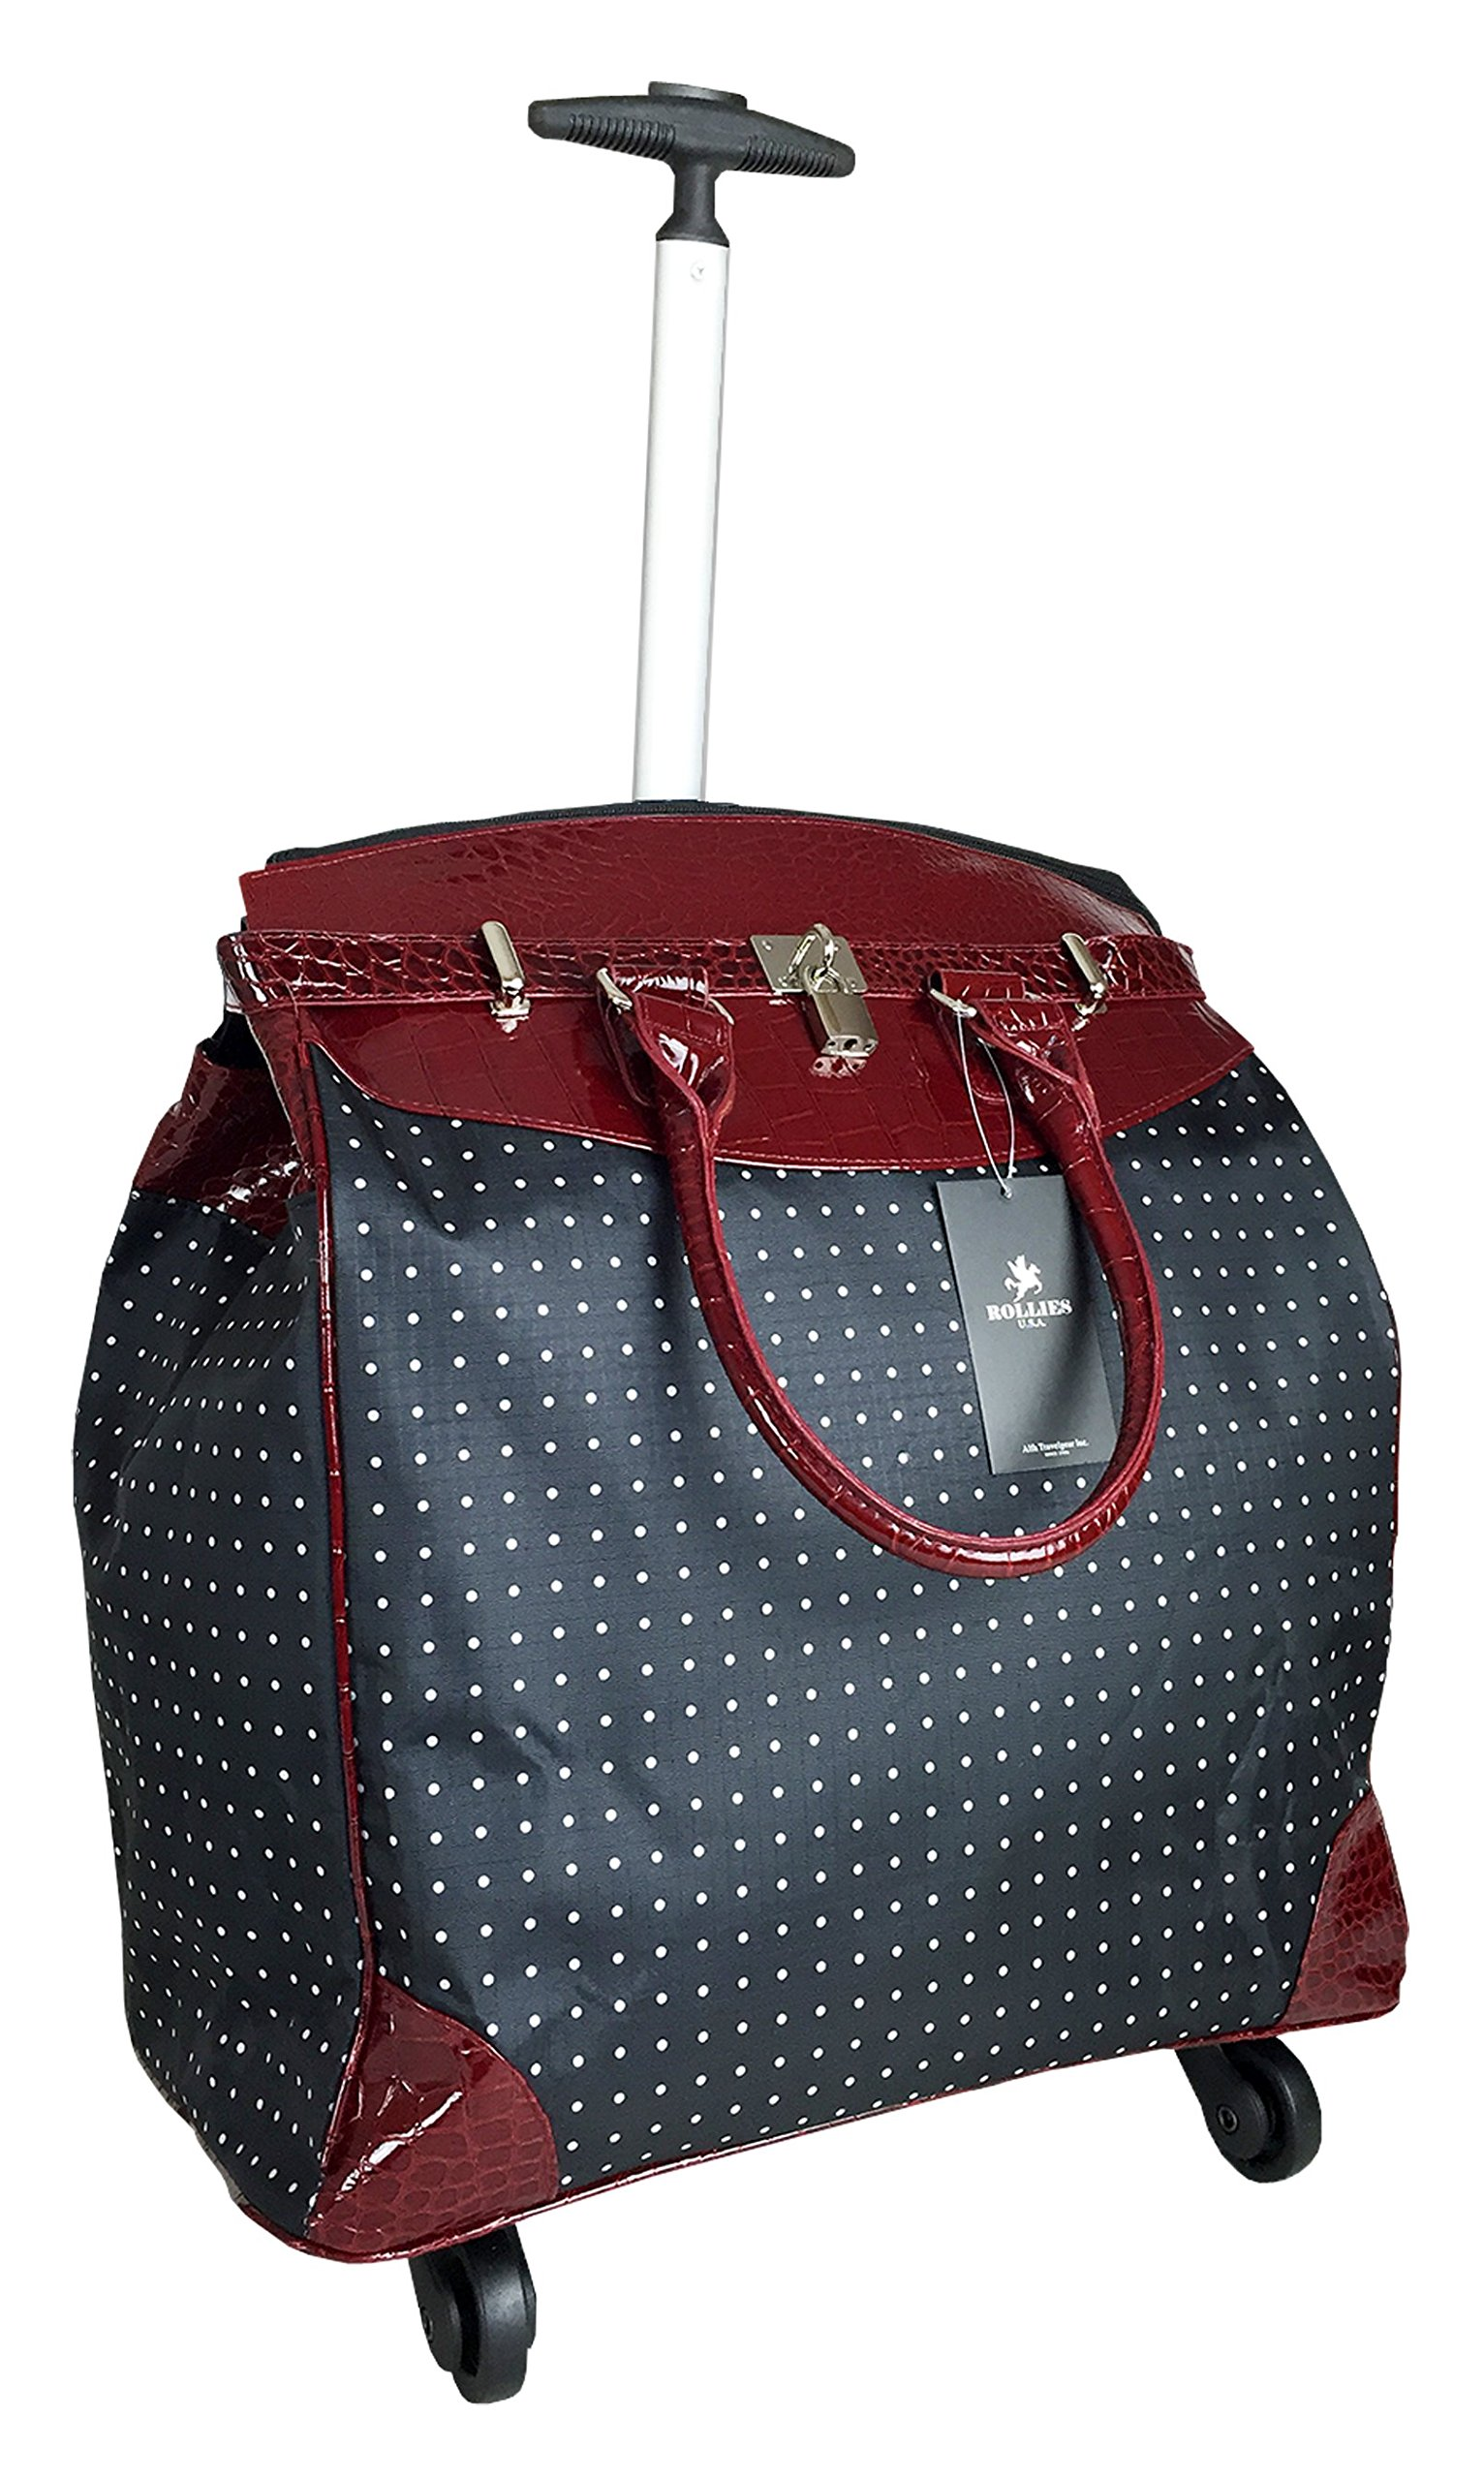 Trendy Flyer Computer/Laptop Rolling Bag 4 Wheel Case Polka Dots Red